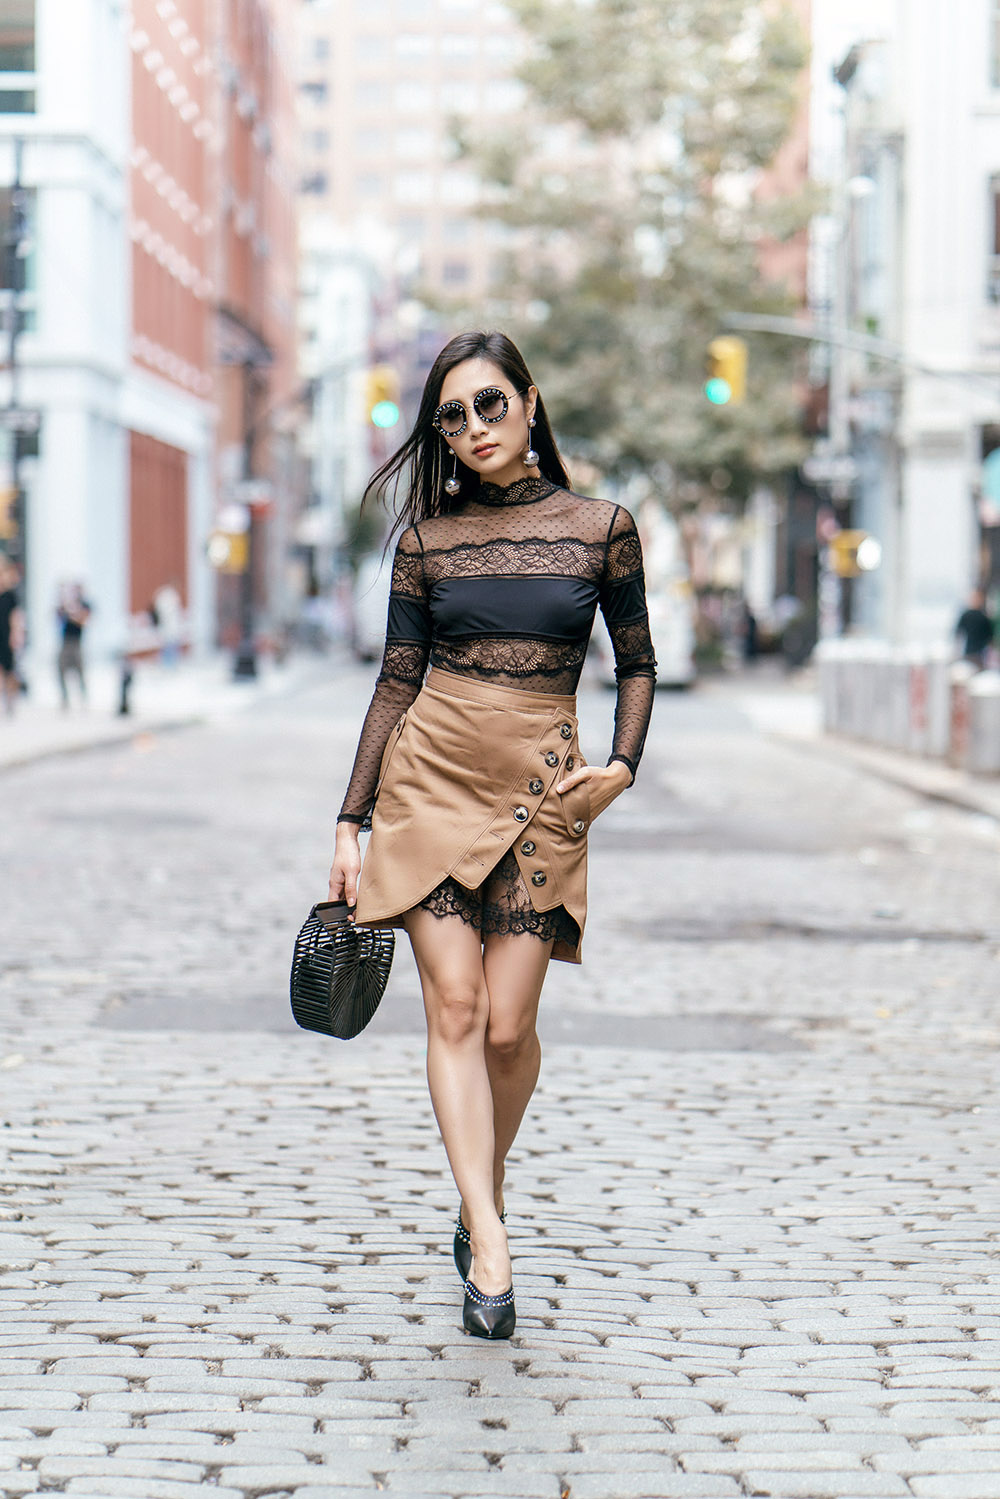 How To Wear Mules This Fall | Of Leather and Lace - A Fashion Blog by Tina Lee | Mule Outfits, Mule shoes, Mule heels